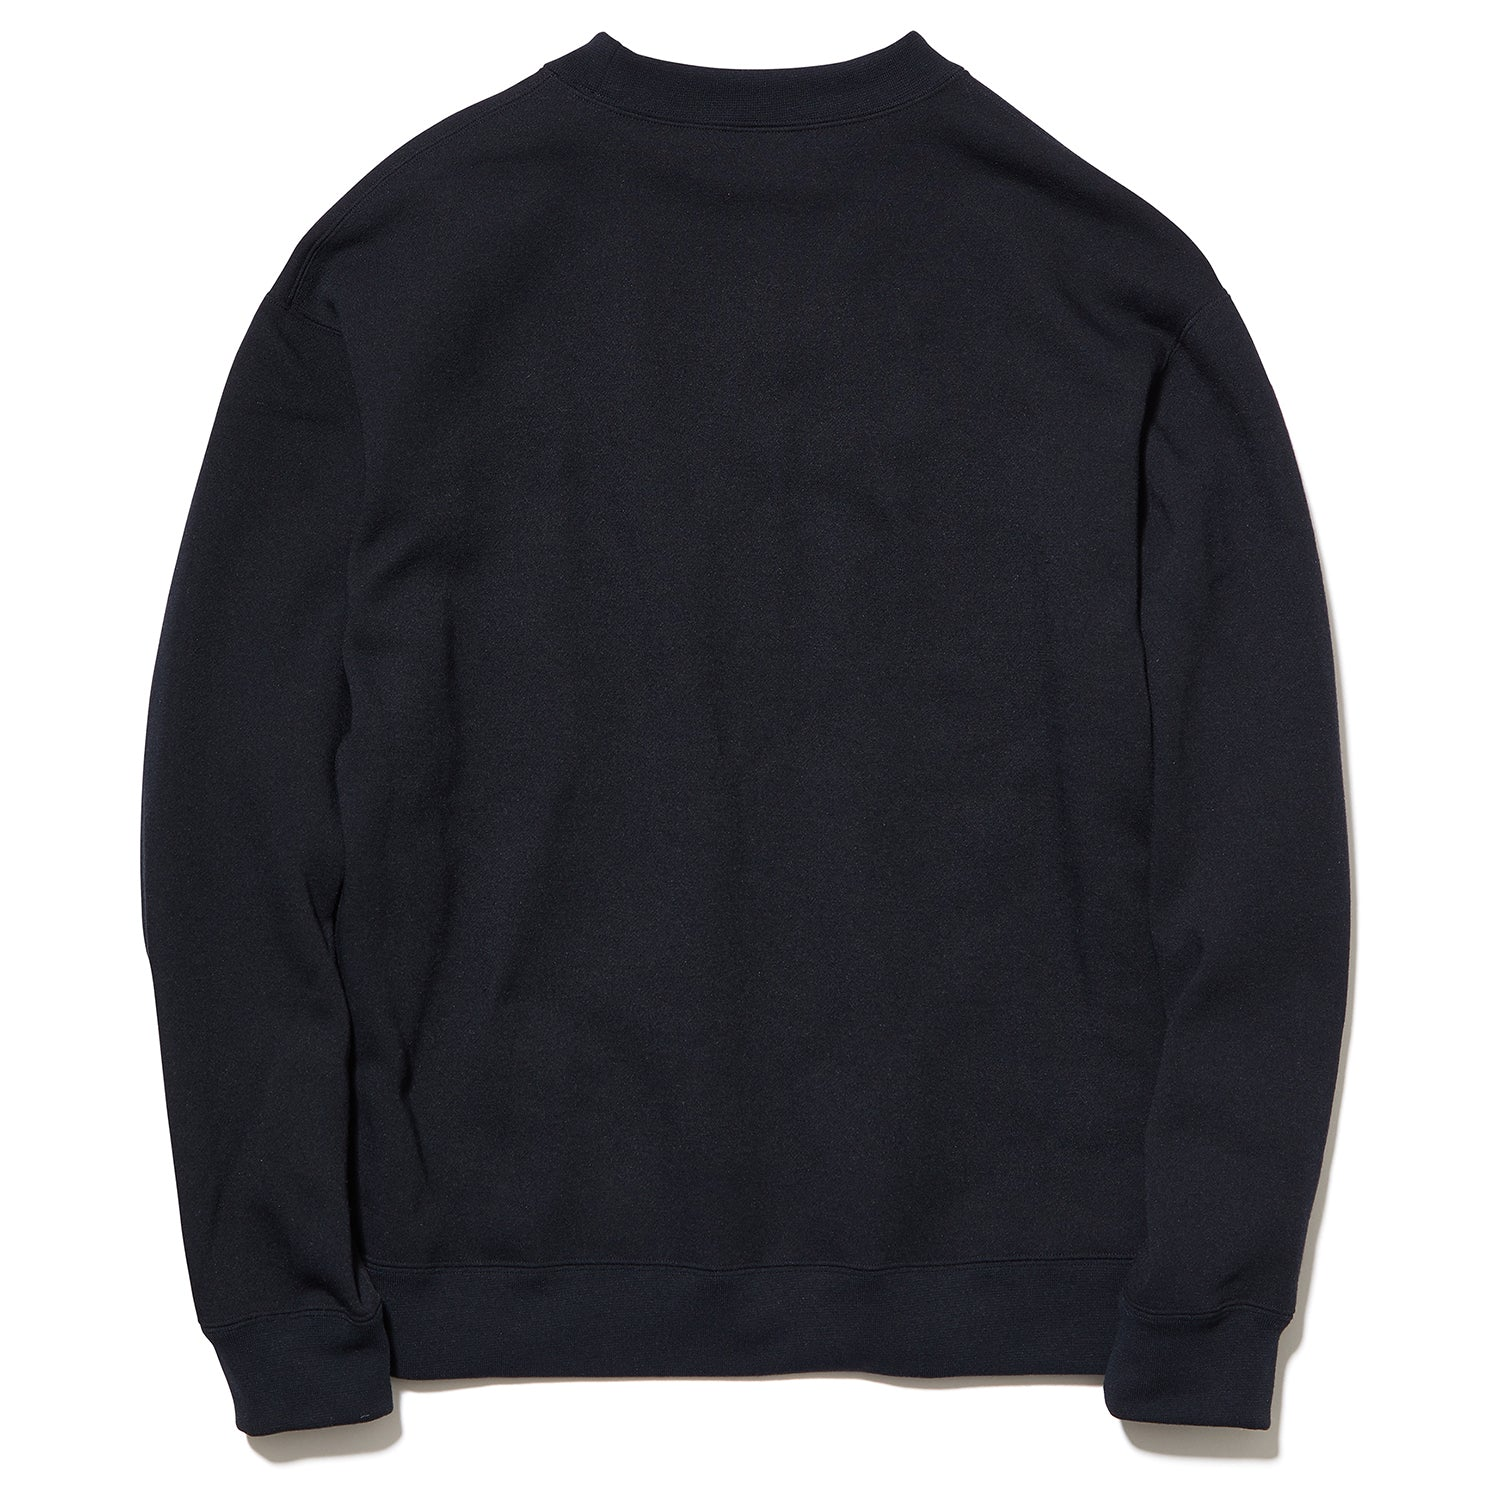 JOG CREW NECK SWEATSHIRT BLACK